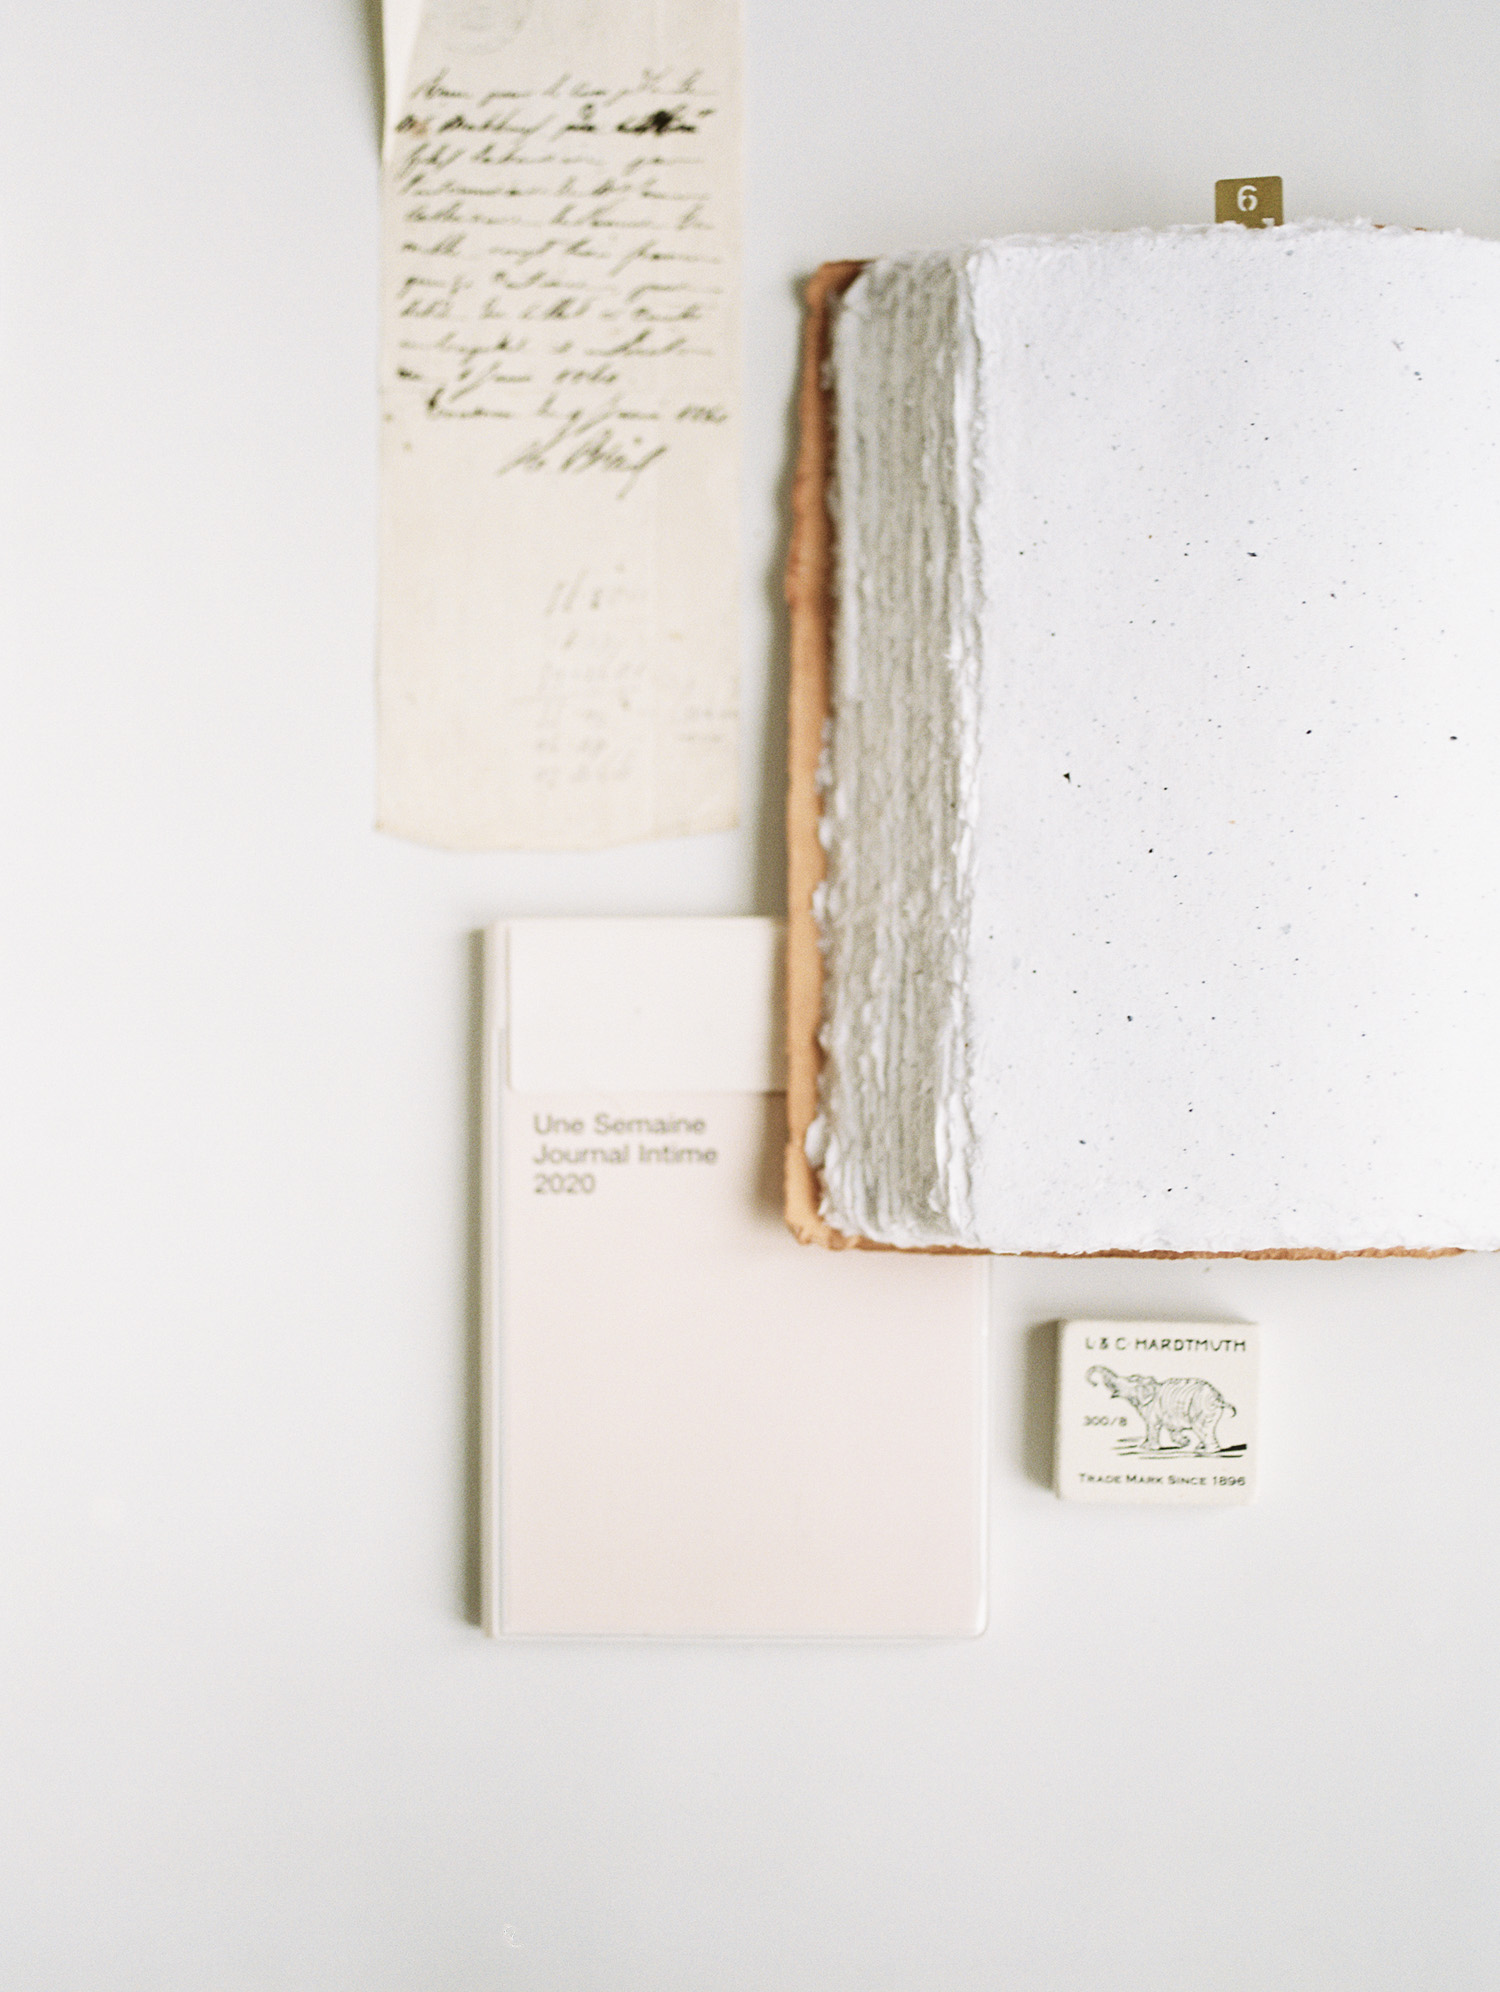 a book of speckled handmade paper is layered on top of a journal and an antique handwritten letter at Tribe Detroit